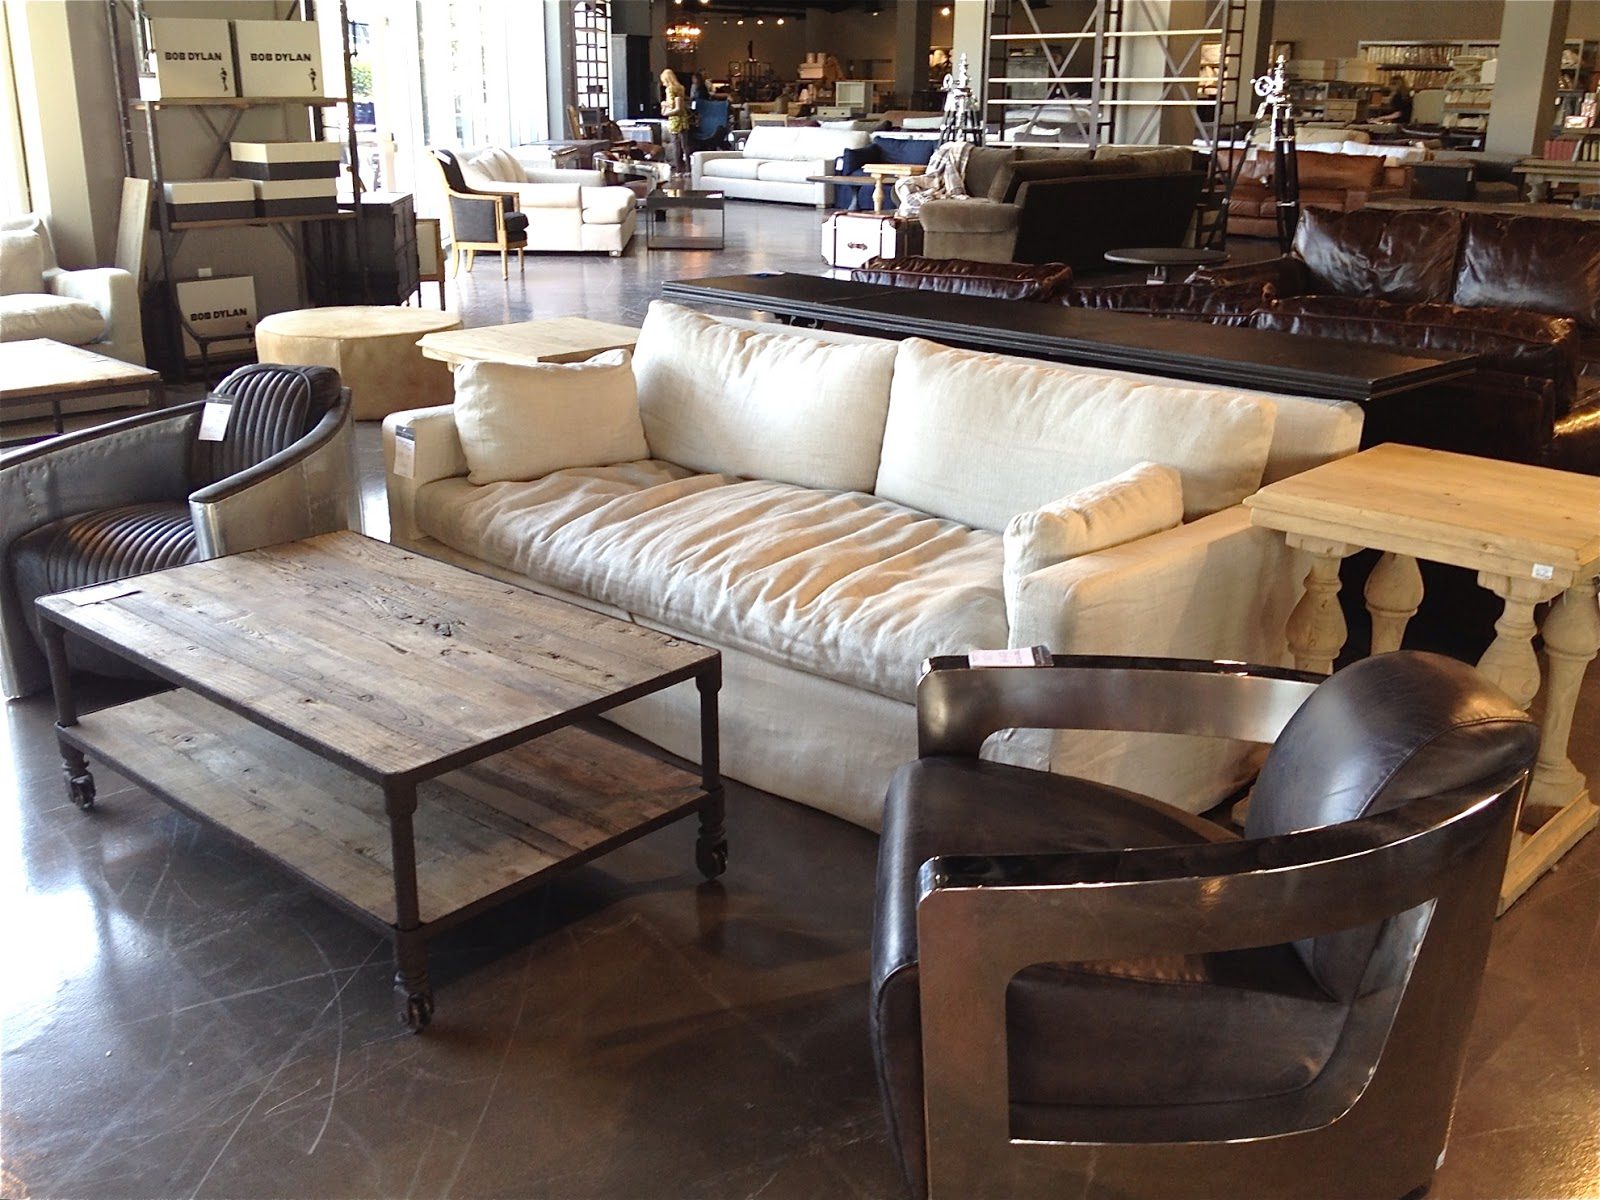 Furniture Restoration Hardware Outlet Window Shopping The